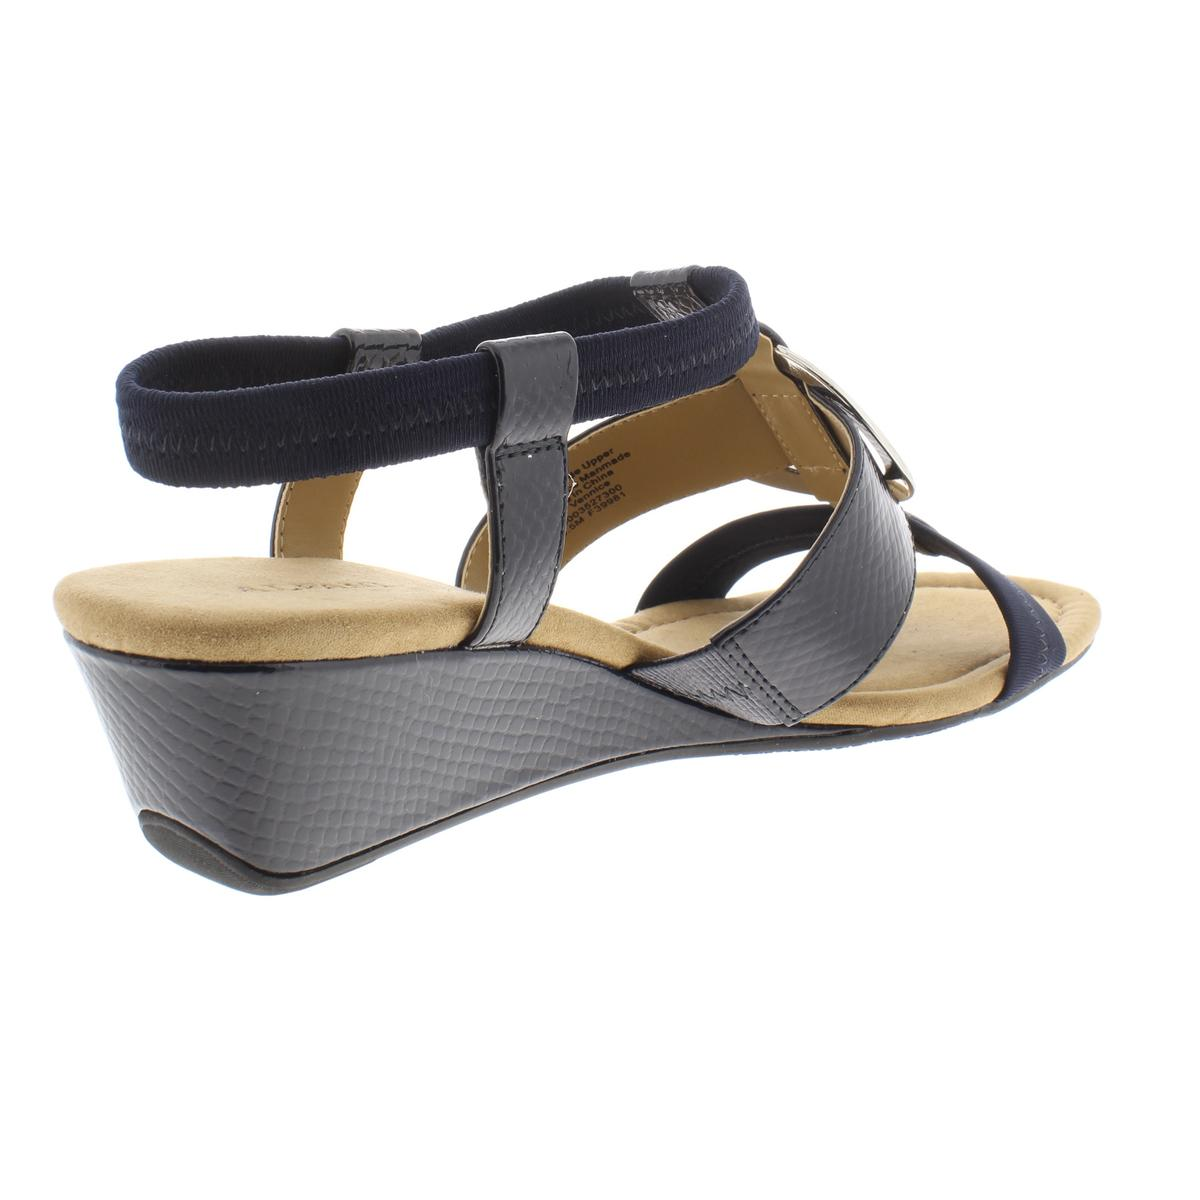 Alfani-Womens-Vennice-Open-Toe-Dress-Sandals-Shoes-BHFO-8448 thumbnail 6